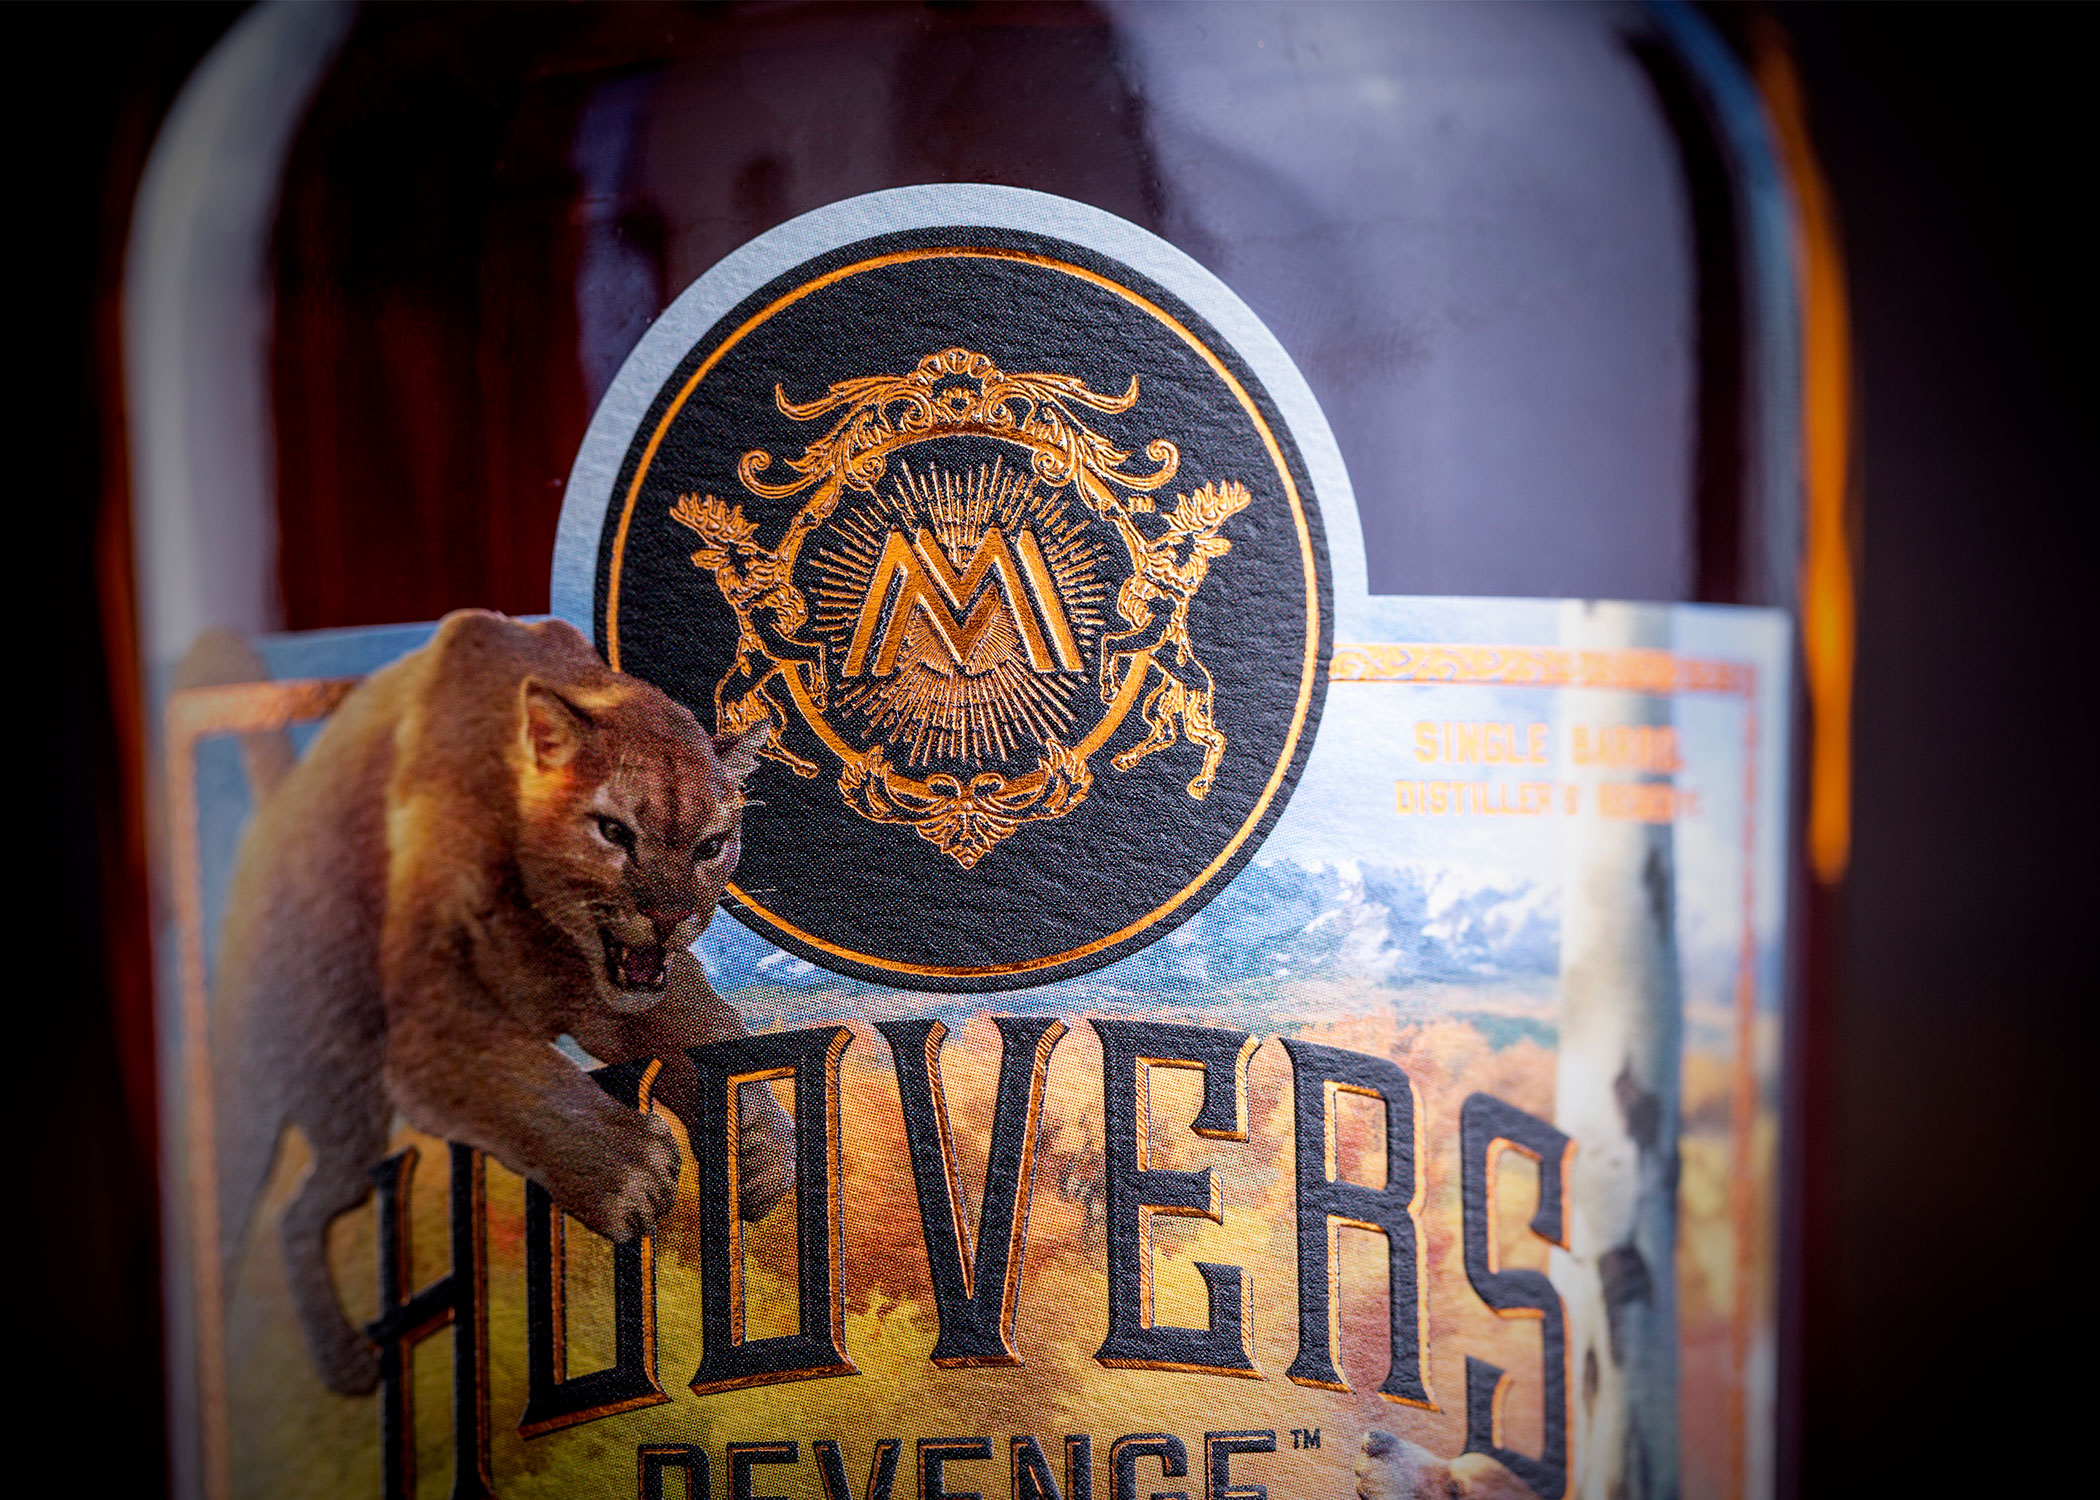 Hoover's Revenge - A craft line of Whiskey from Carbondale CO.